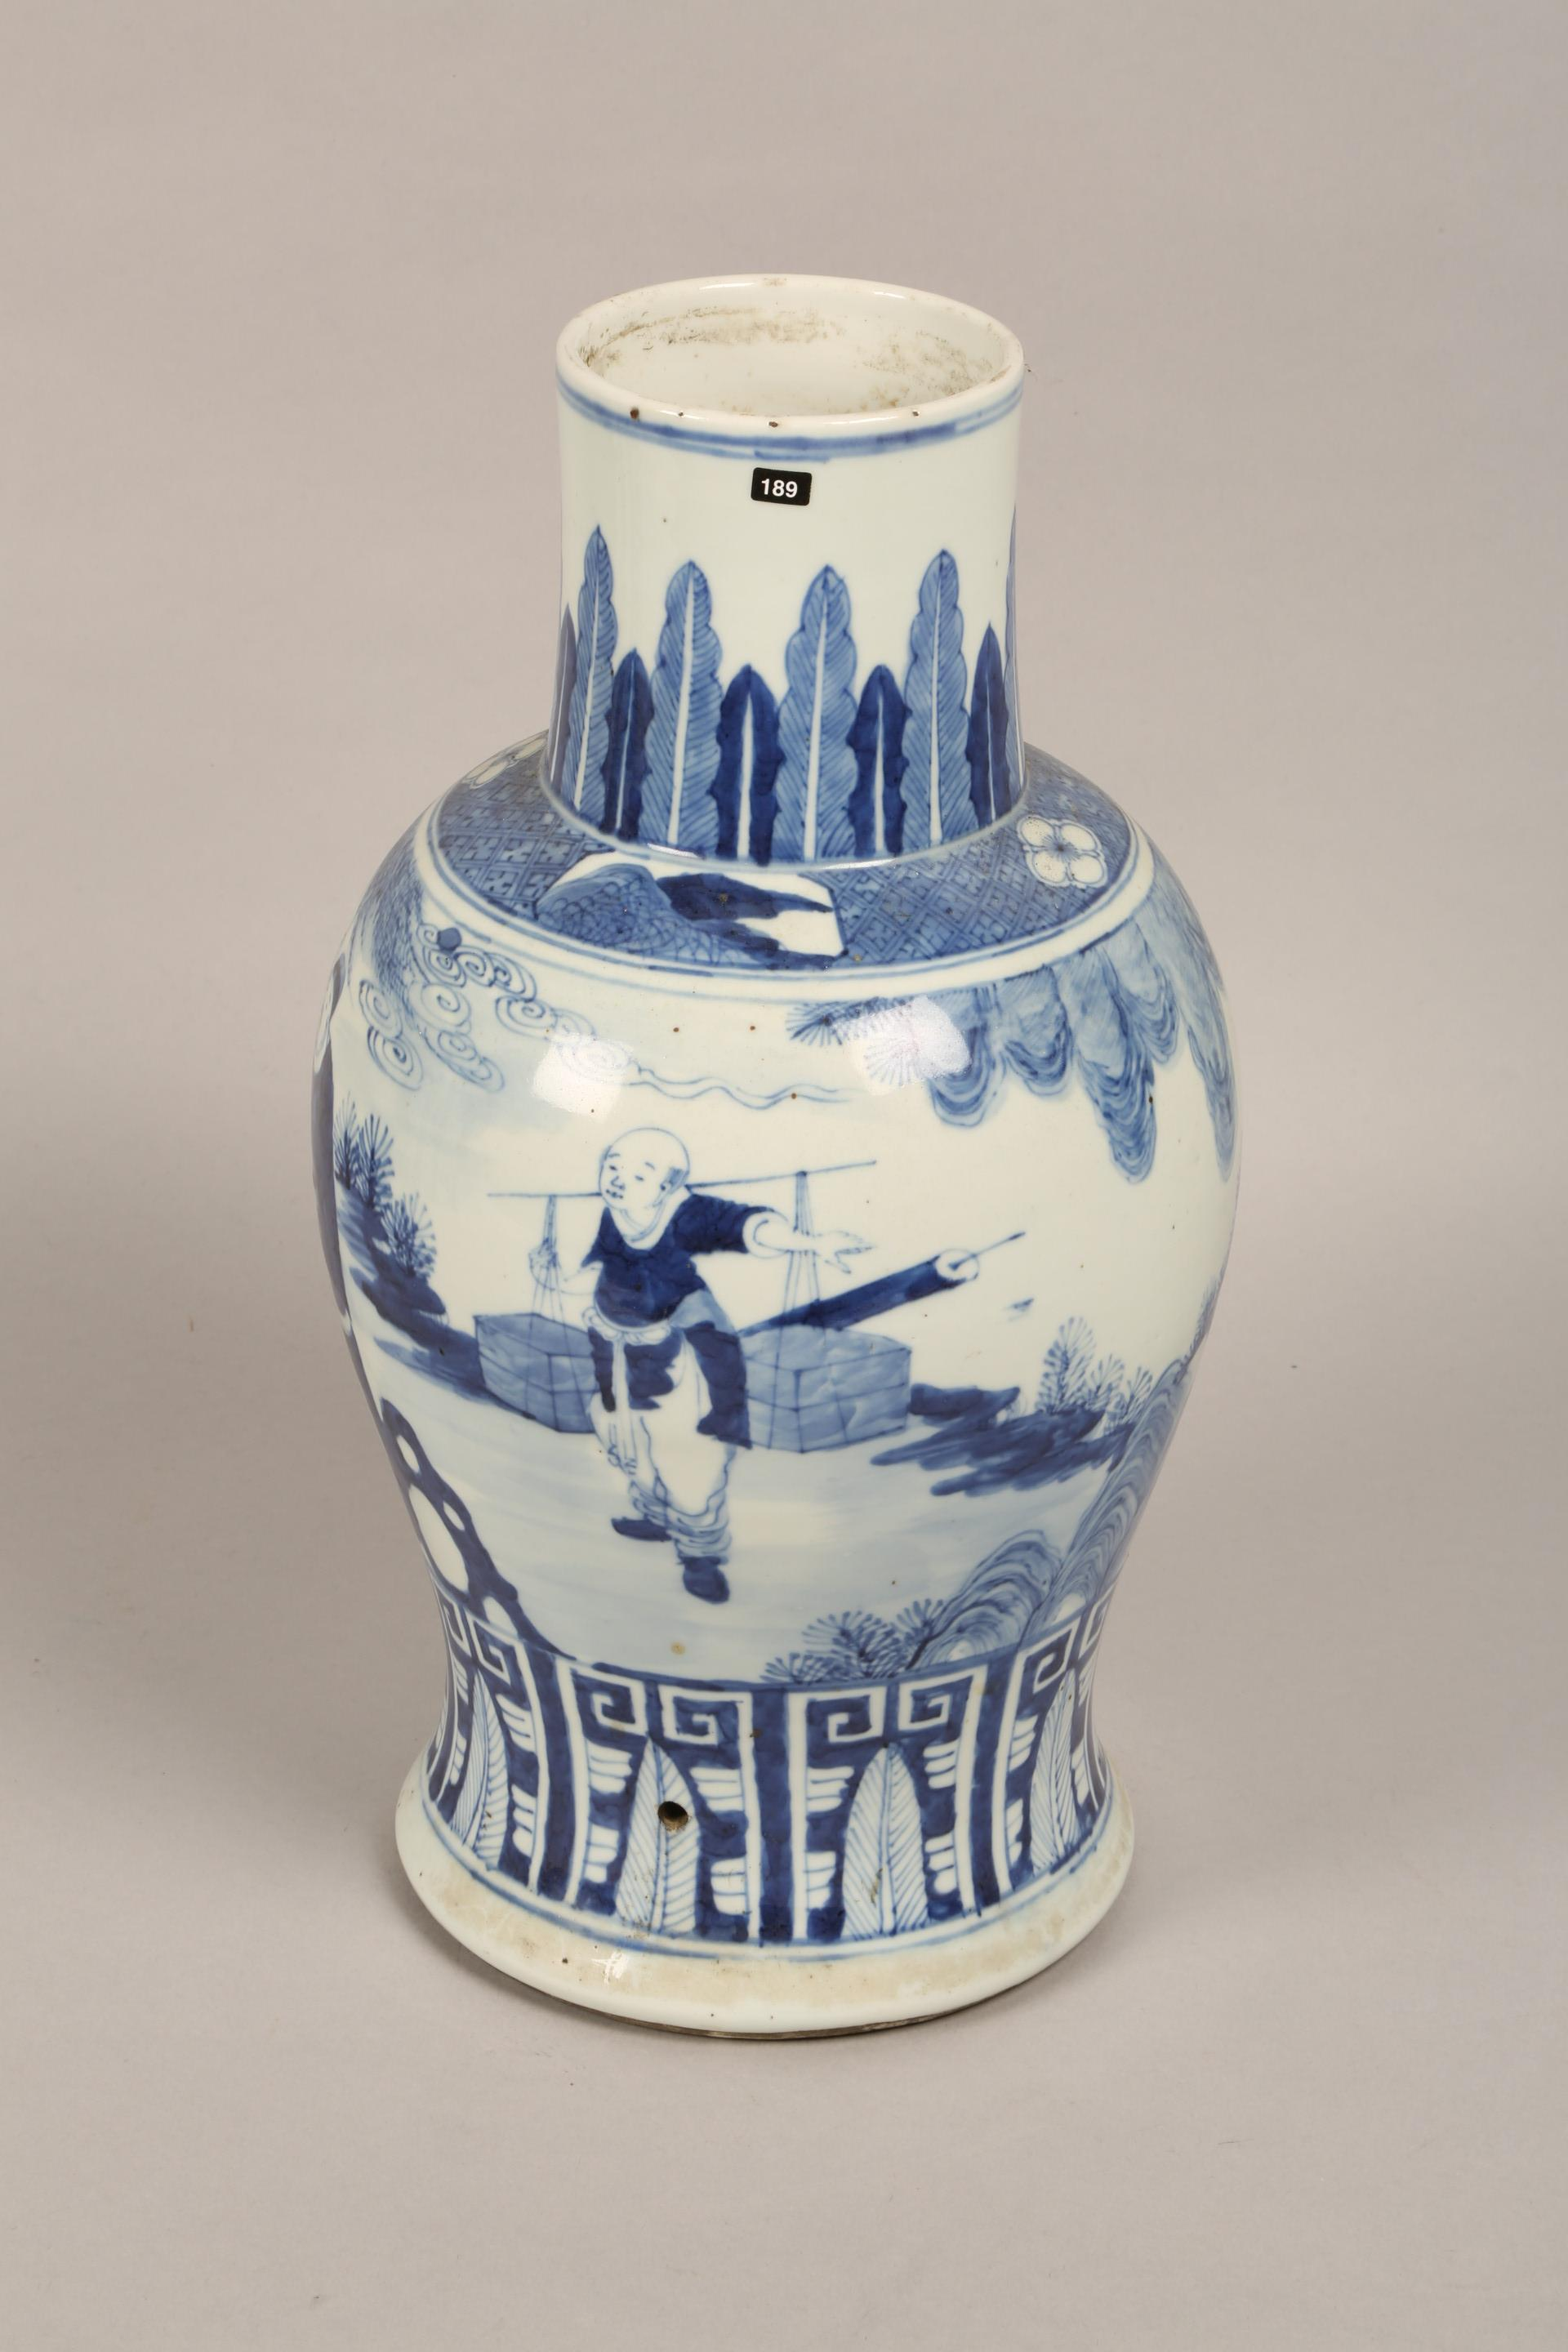 19th century Chinese blue and white vase of baluster form, decorated with figures in a landscape ( - Image 4 of 6